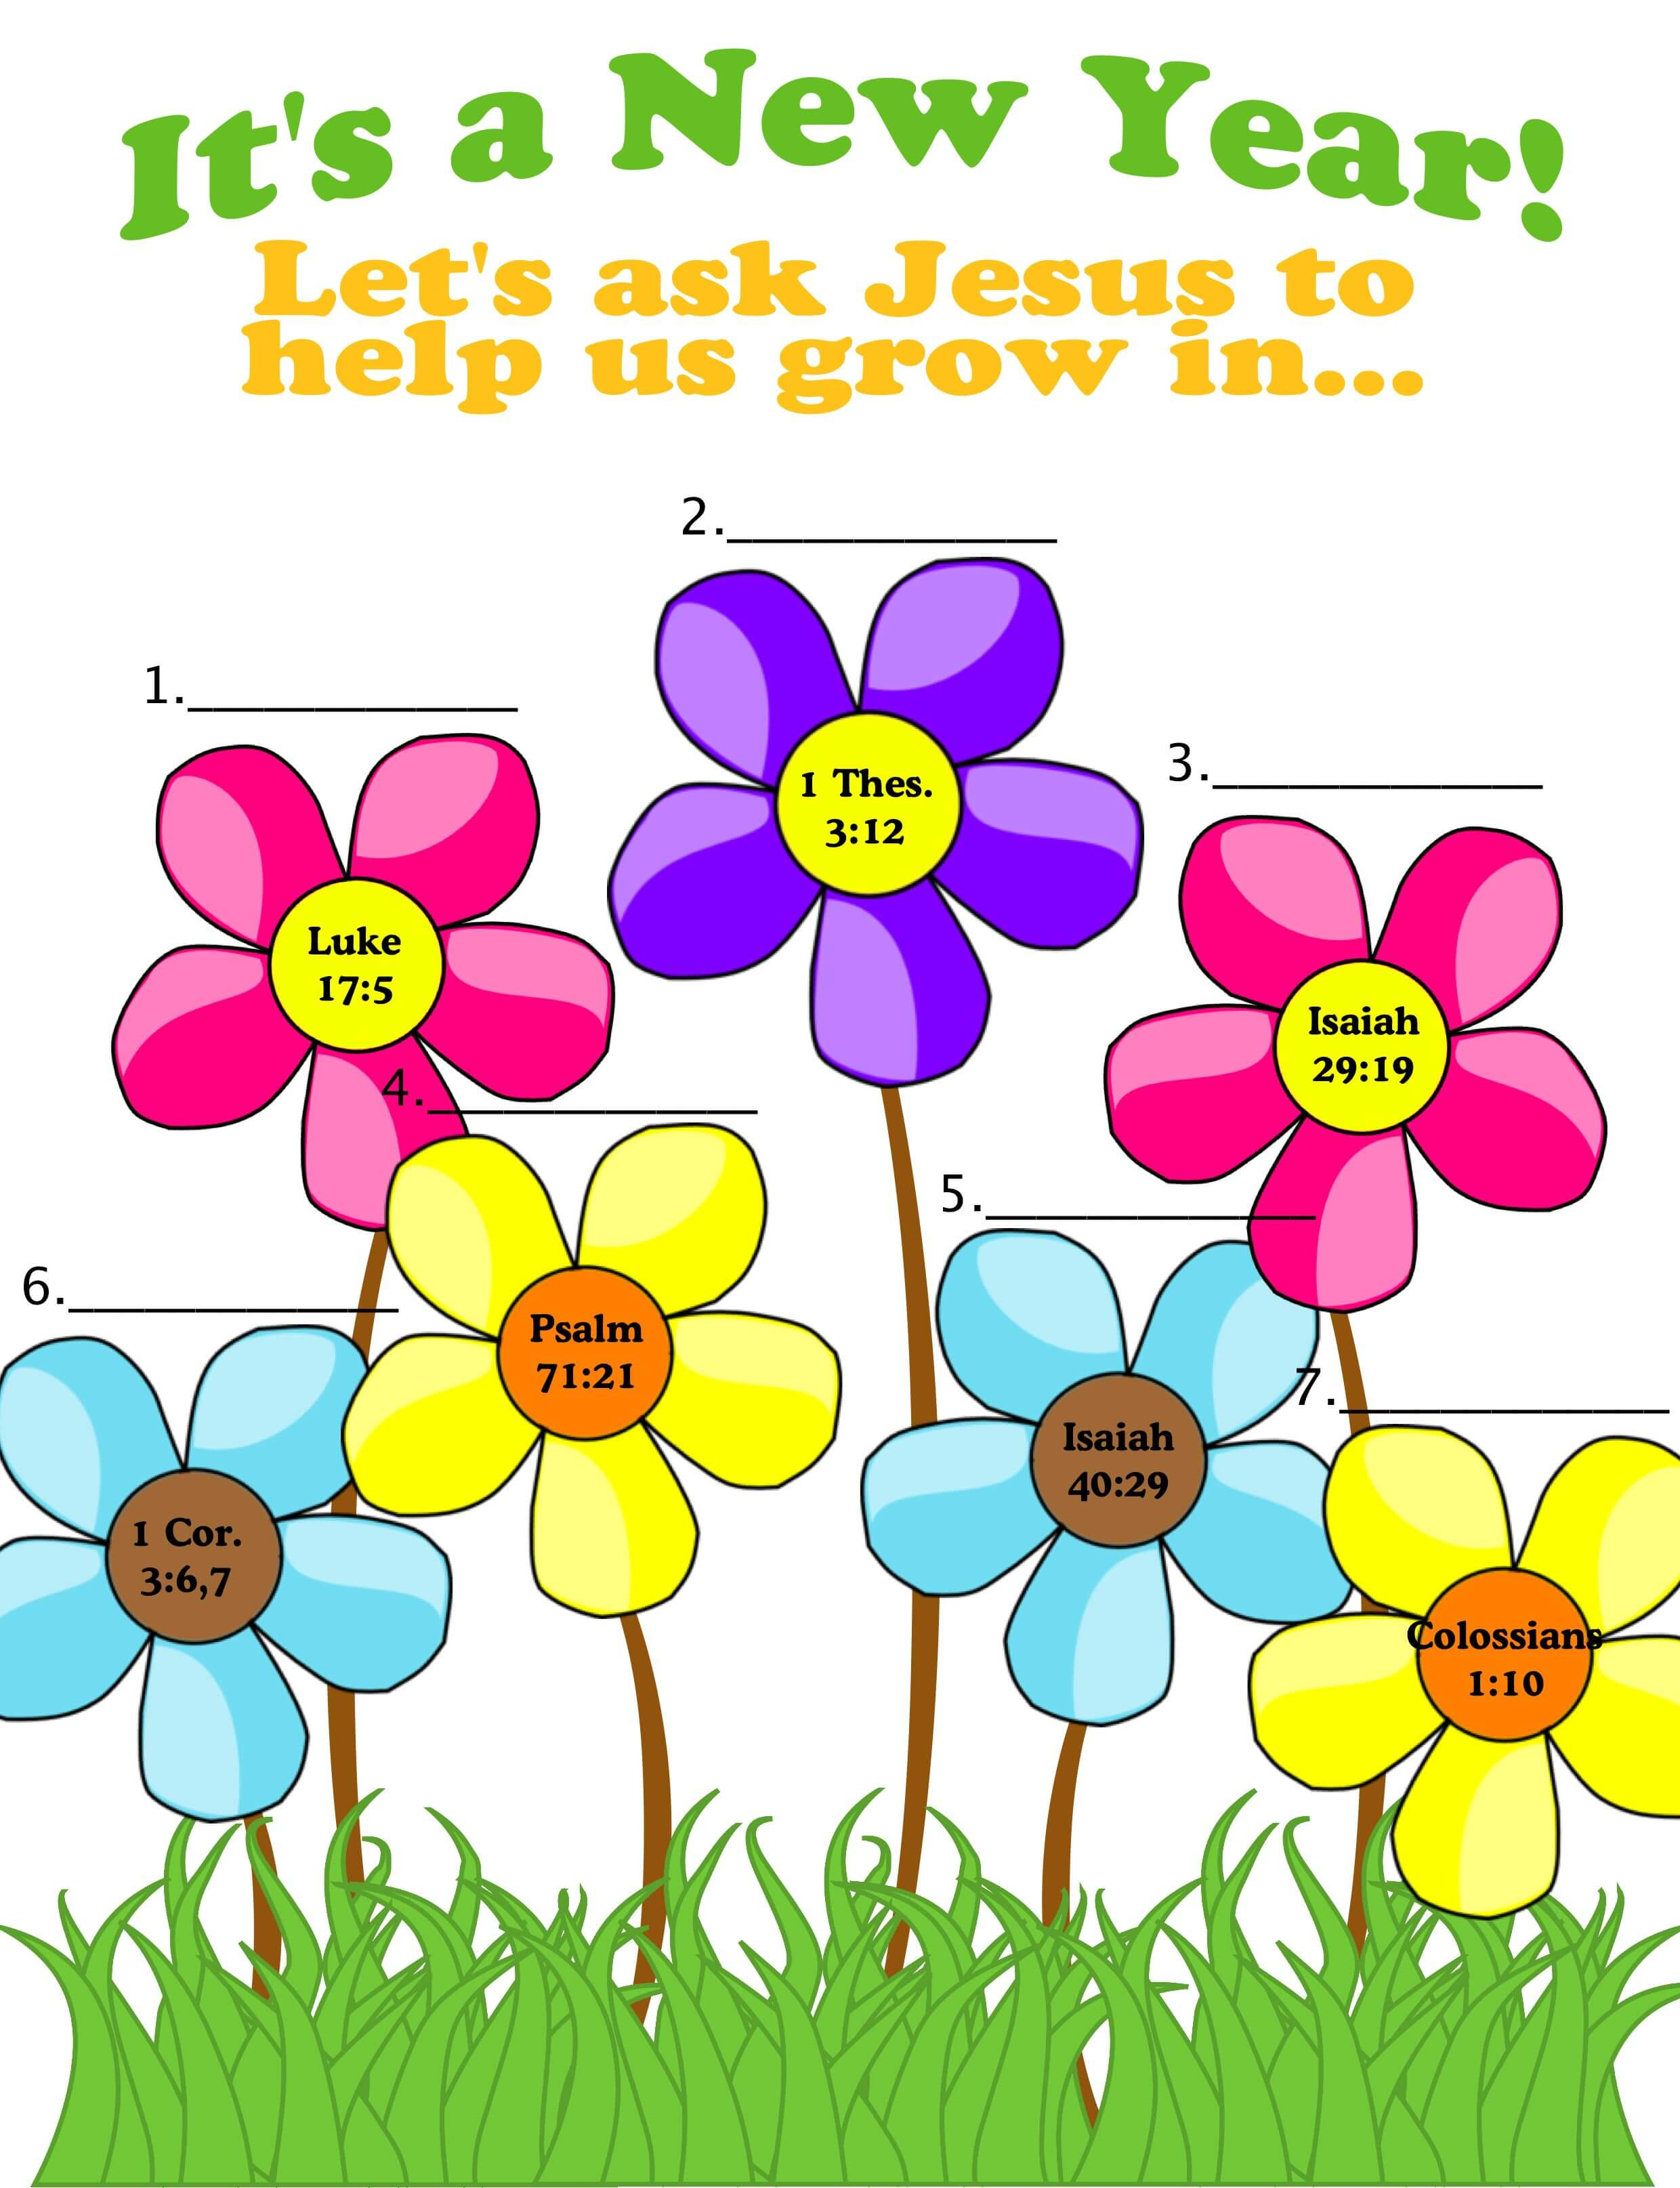 I thessalonians 1 1-10 clipart clip black and white library Teach 7 Ways God Wants Your Kids to Grow: A Bible Outline ... clip black and white library